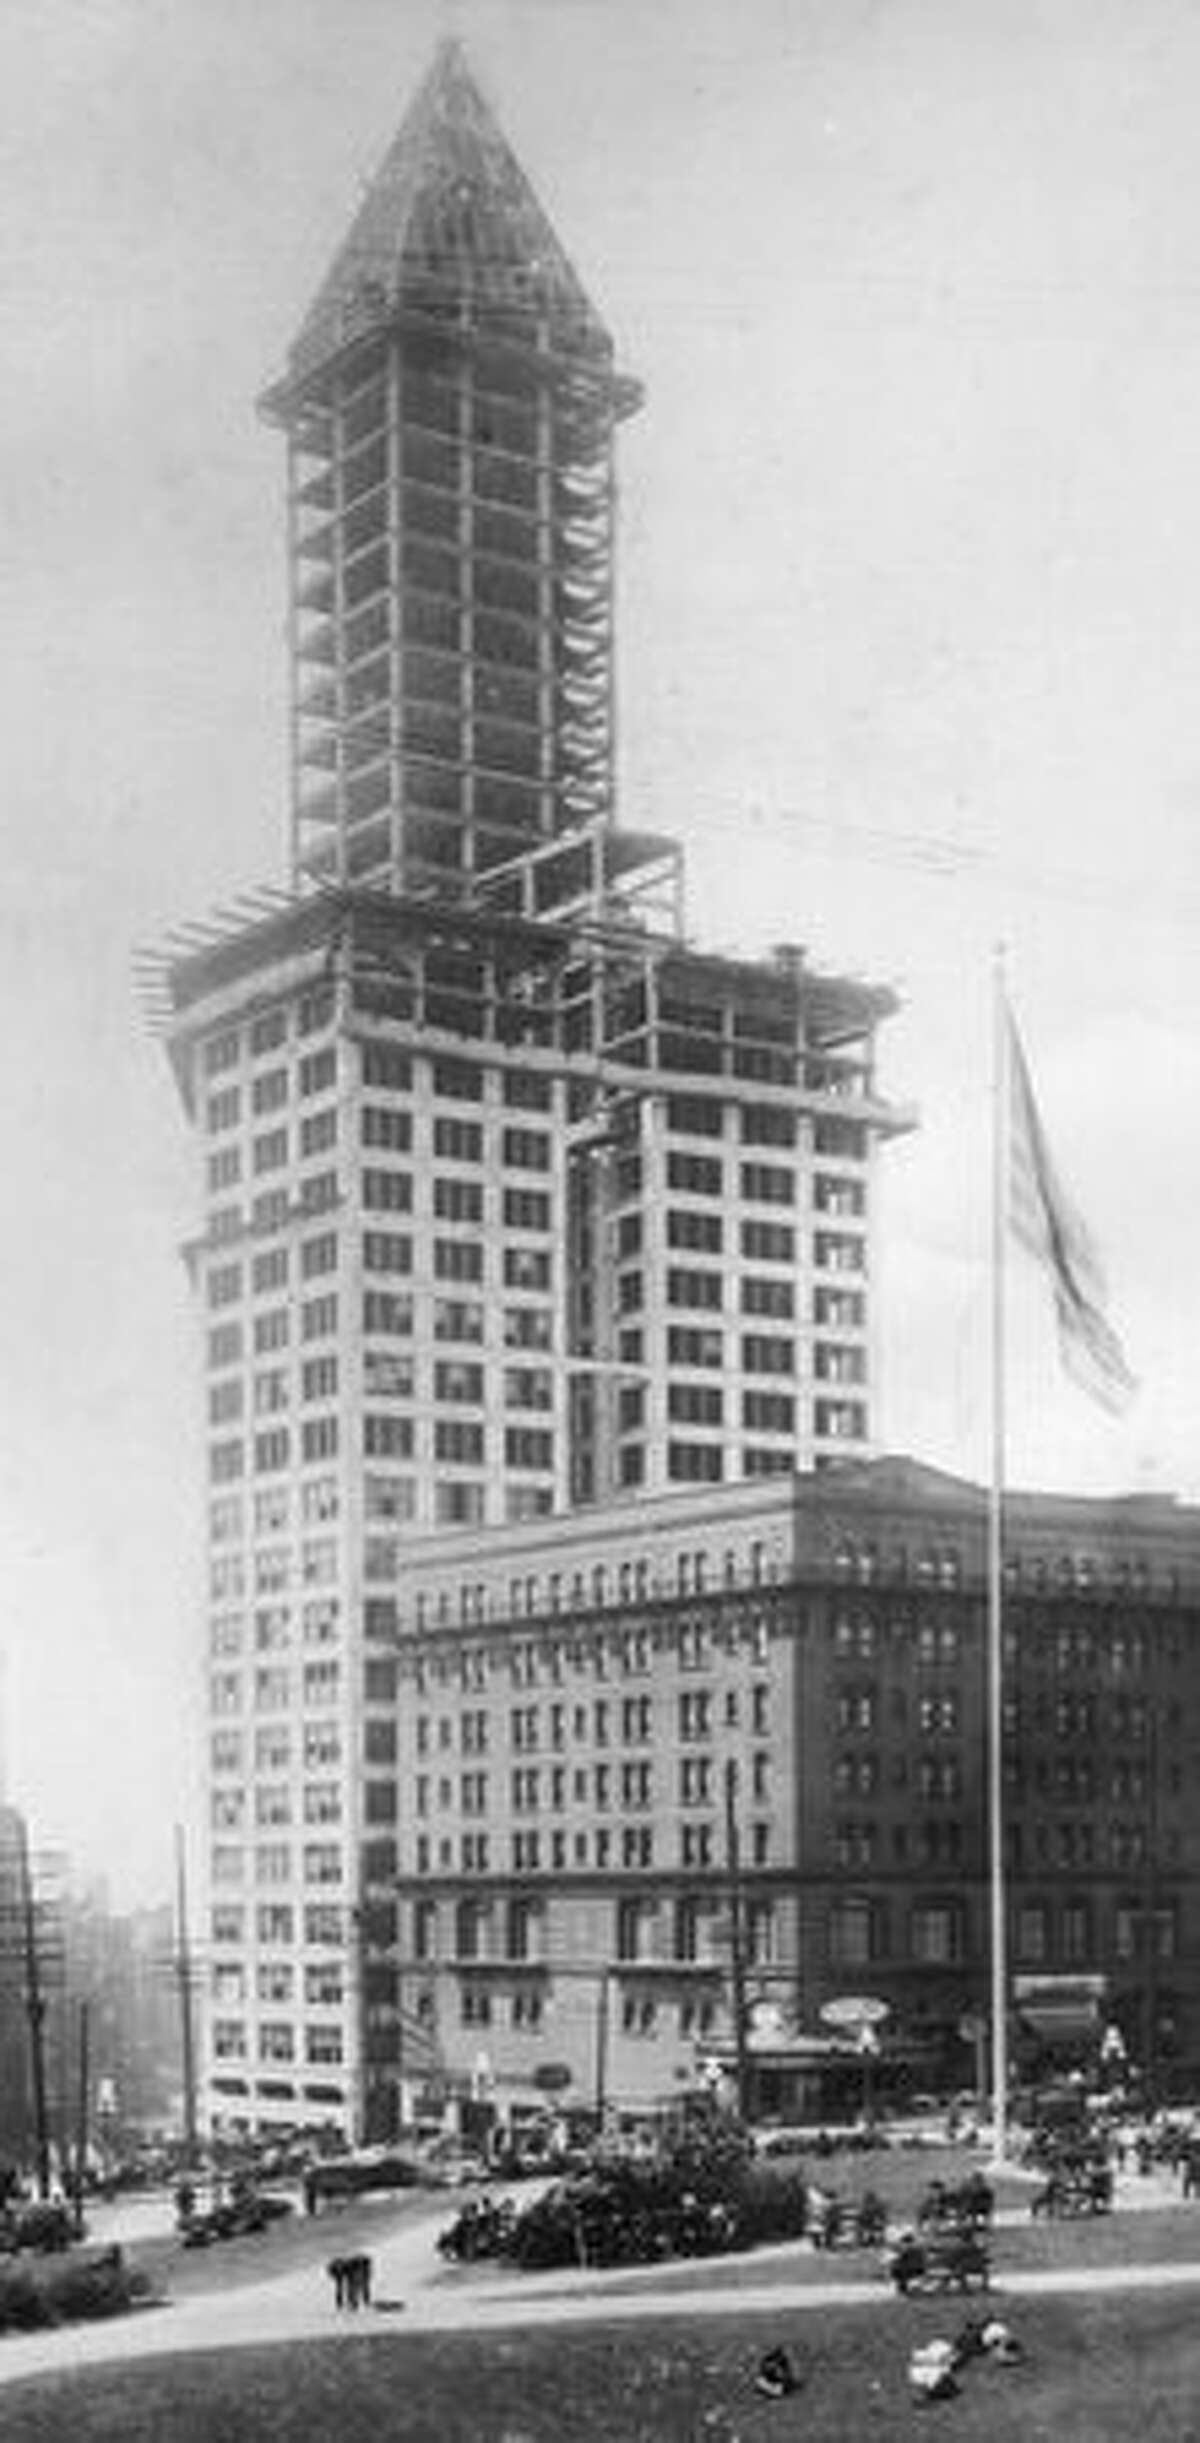 The Smith Tower, exact date unknown.